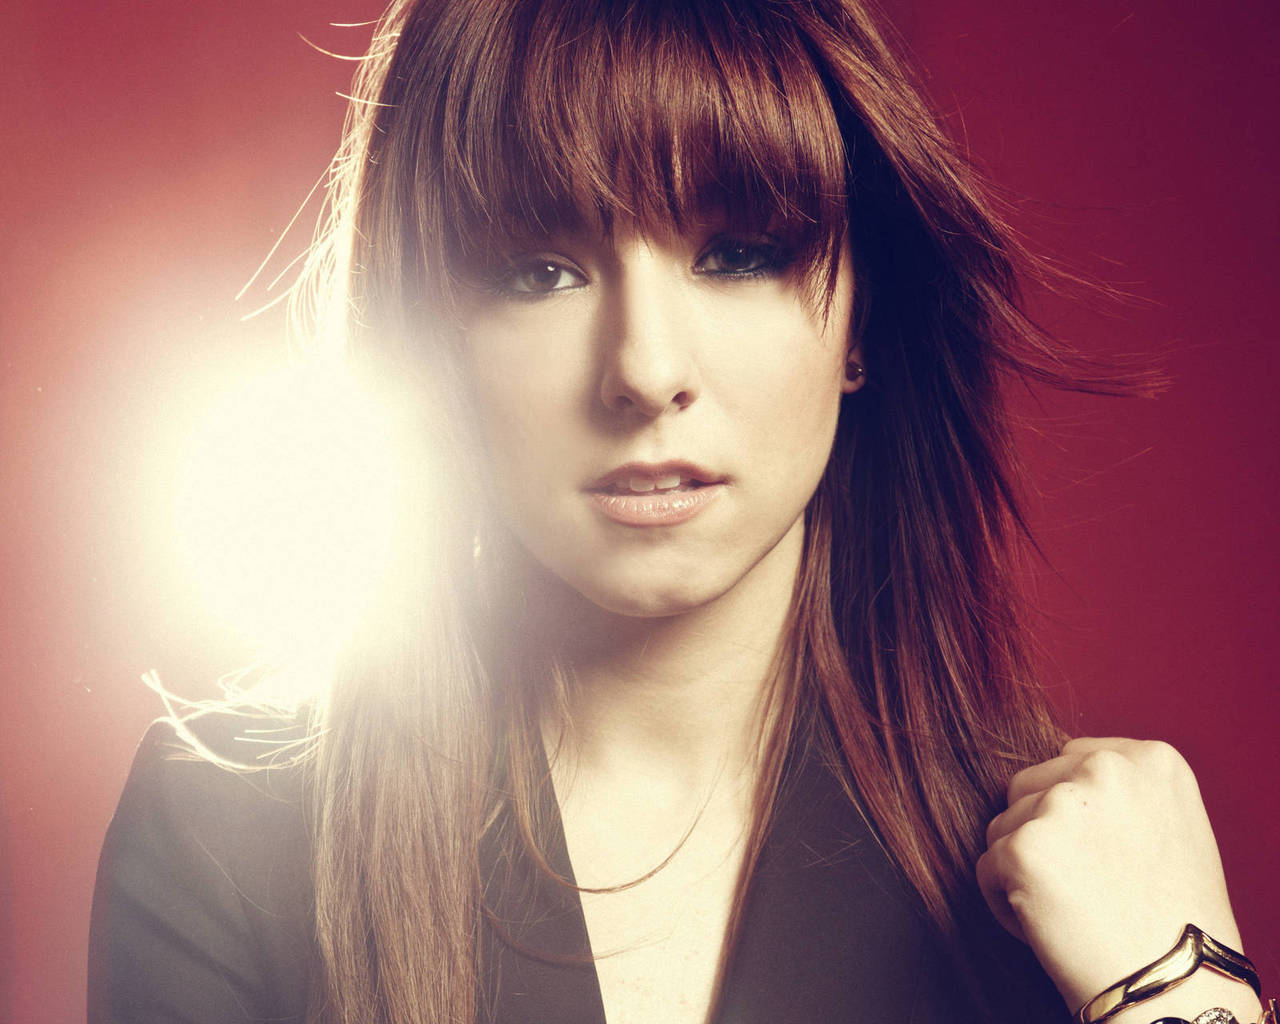 christina grimmie mobile wallpaper 55074